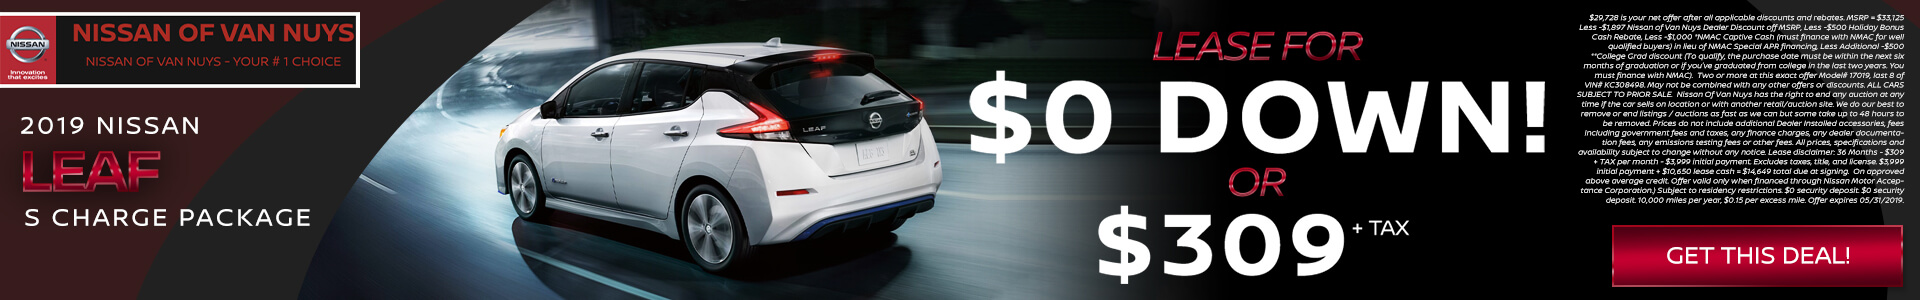 Nissan Leaf $29,728 Purchase/Lease